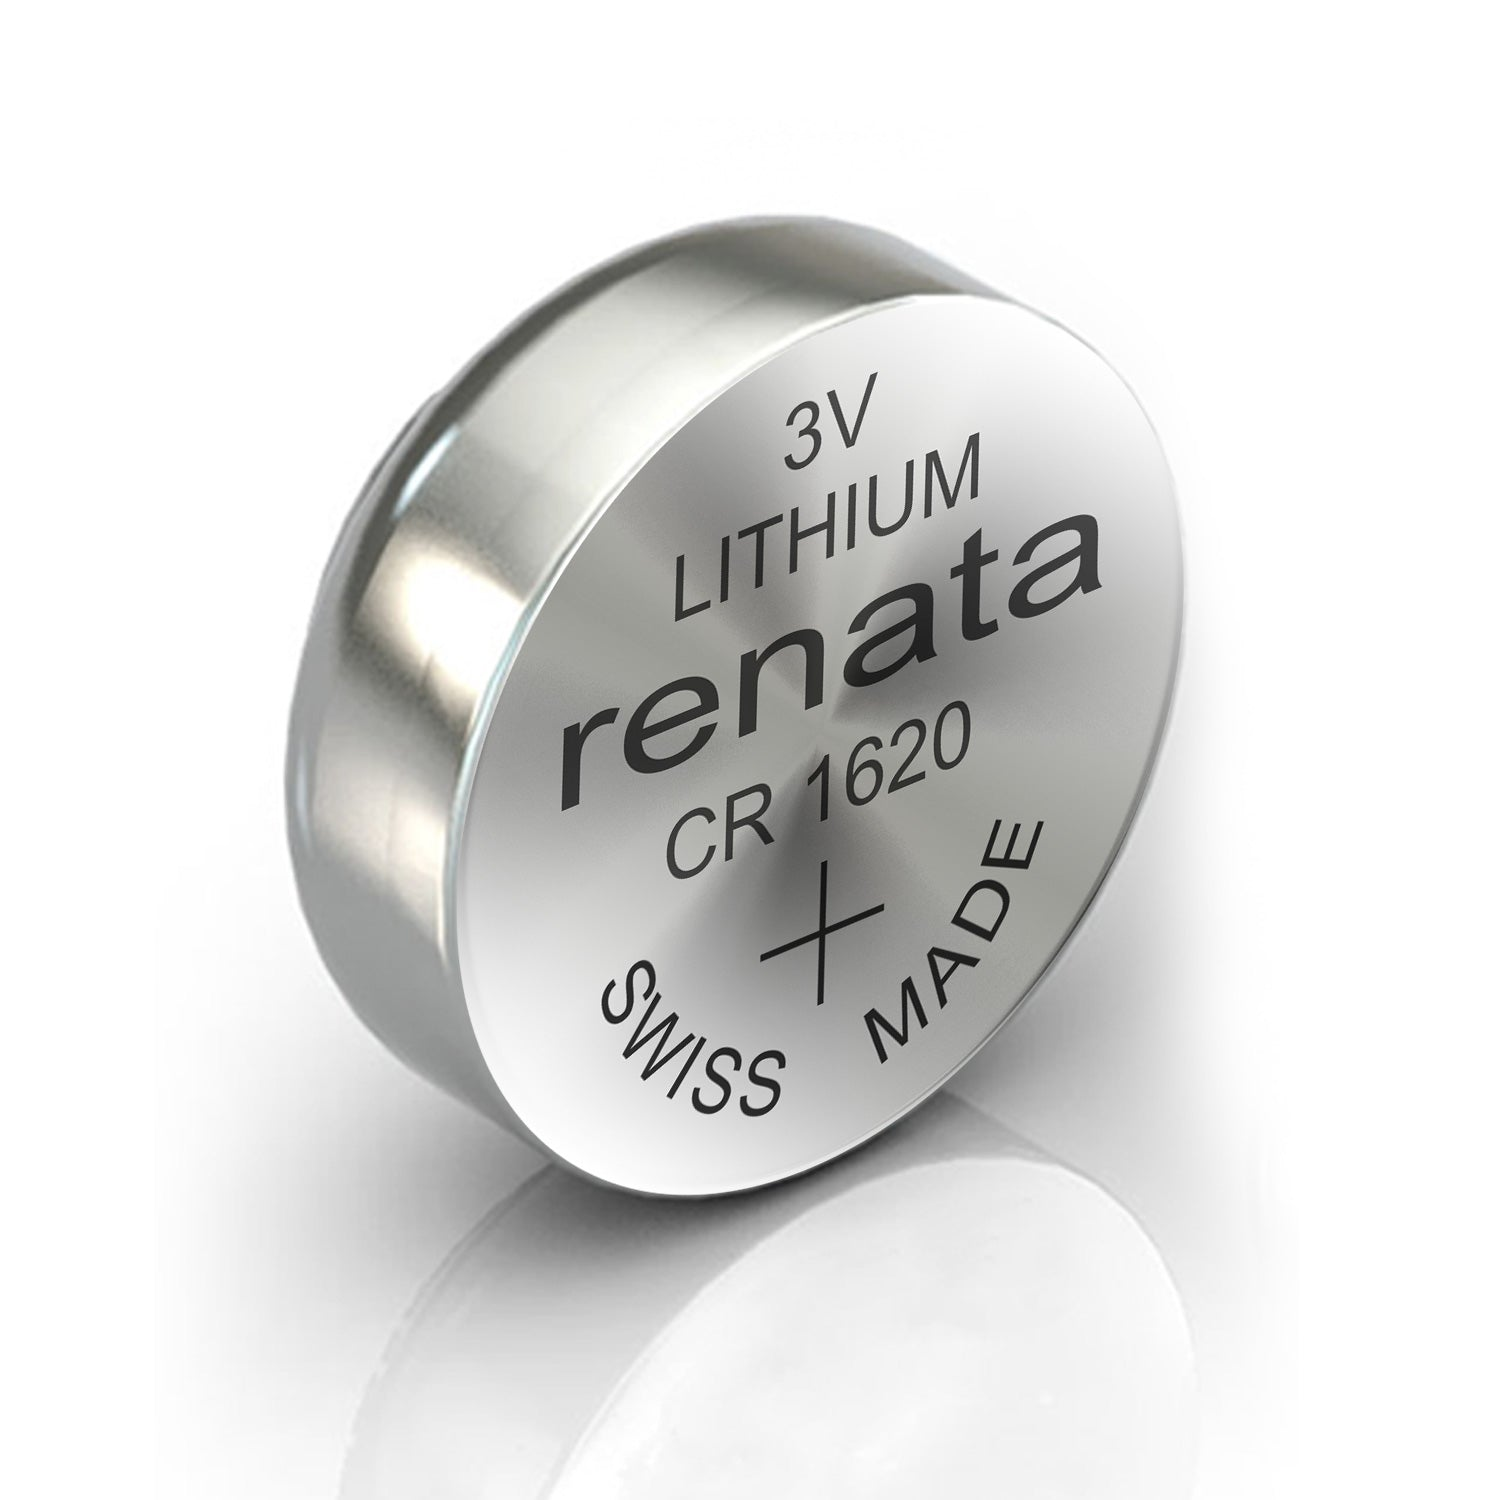 10x Renata CR1620 Watch Battery 3V Swiss Made Silver Coin Batteries by  TradeNRG